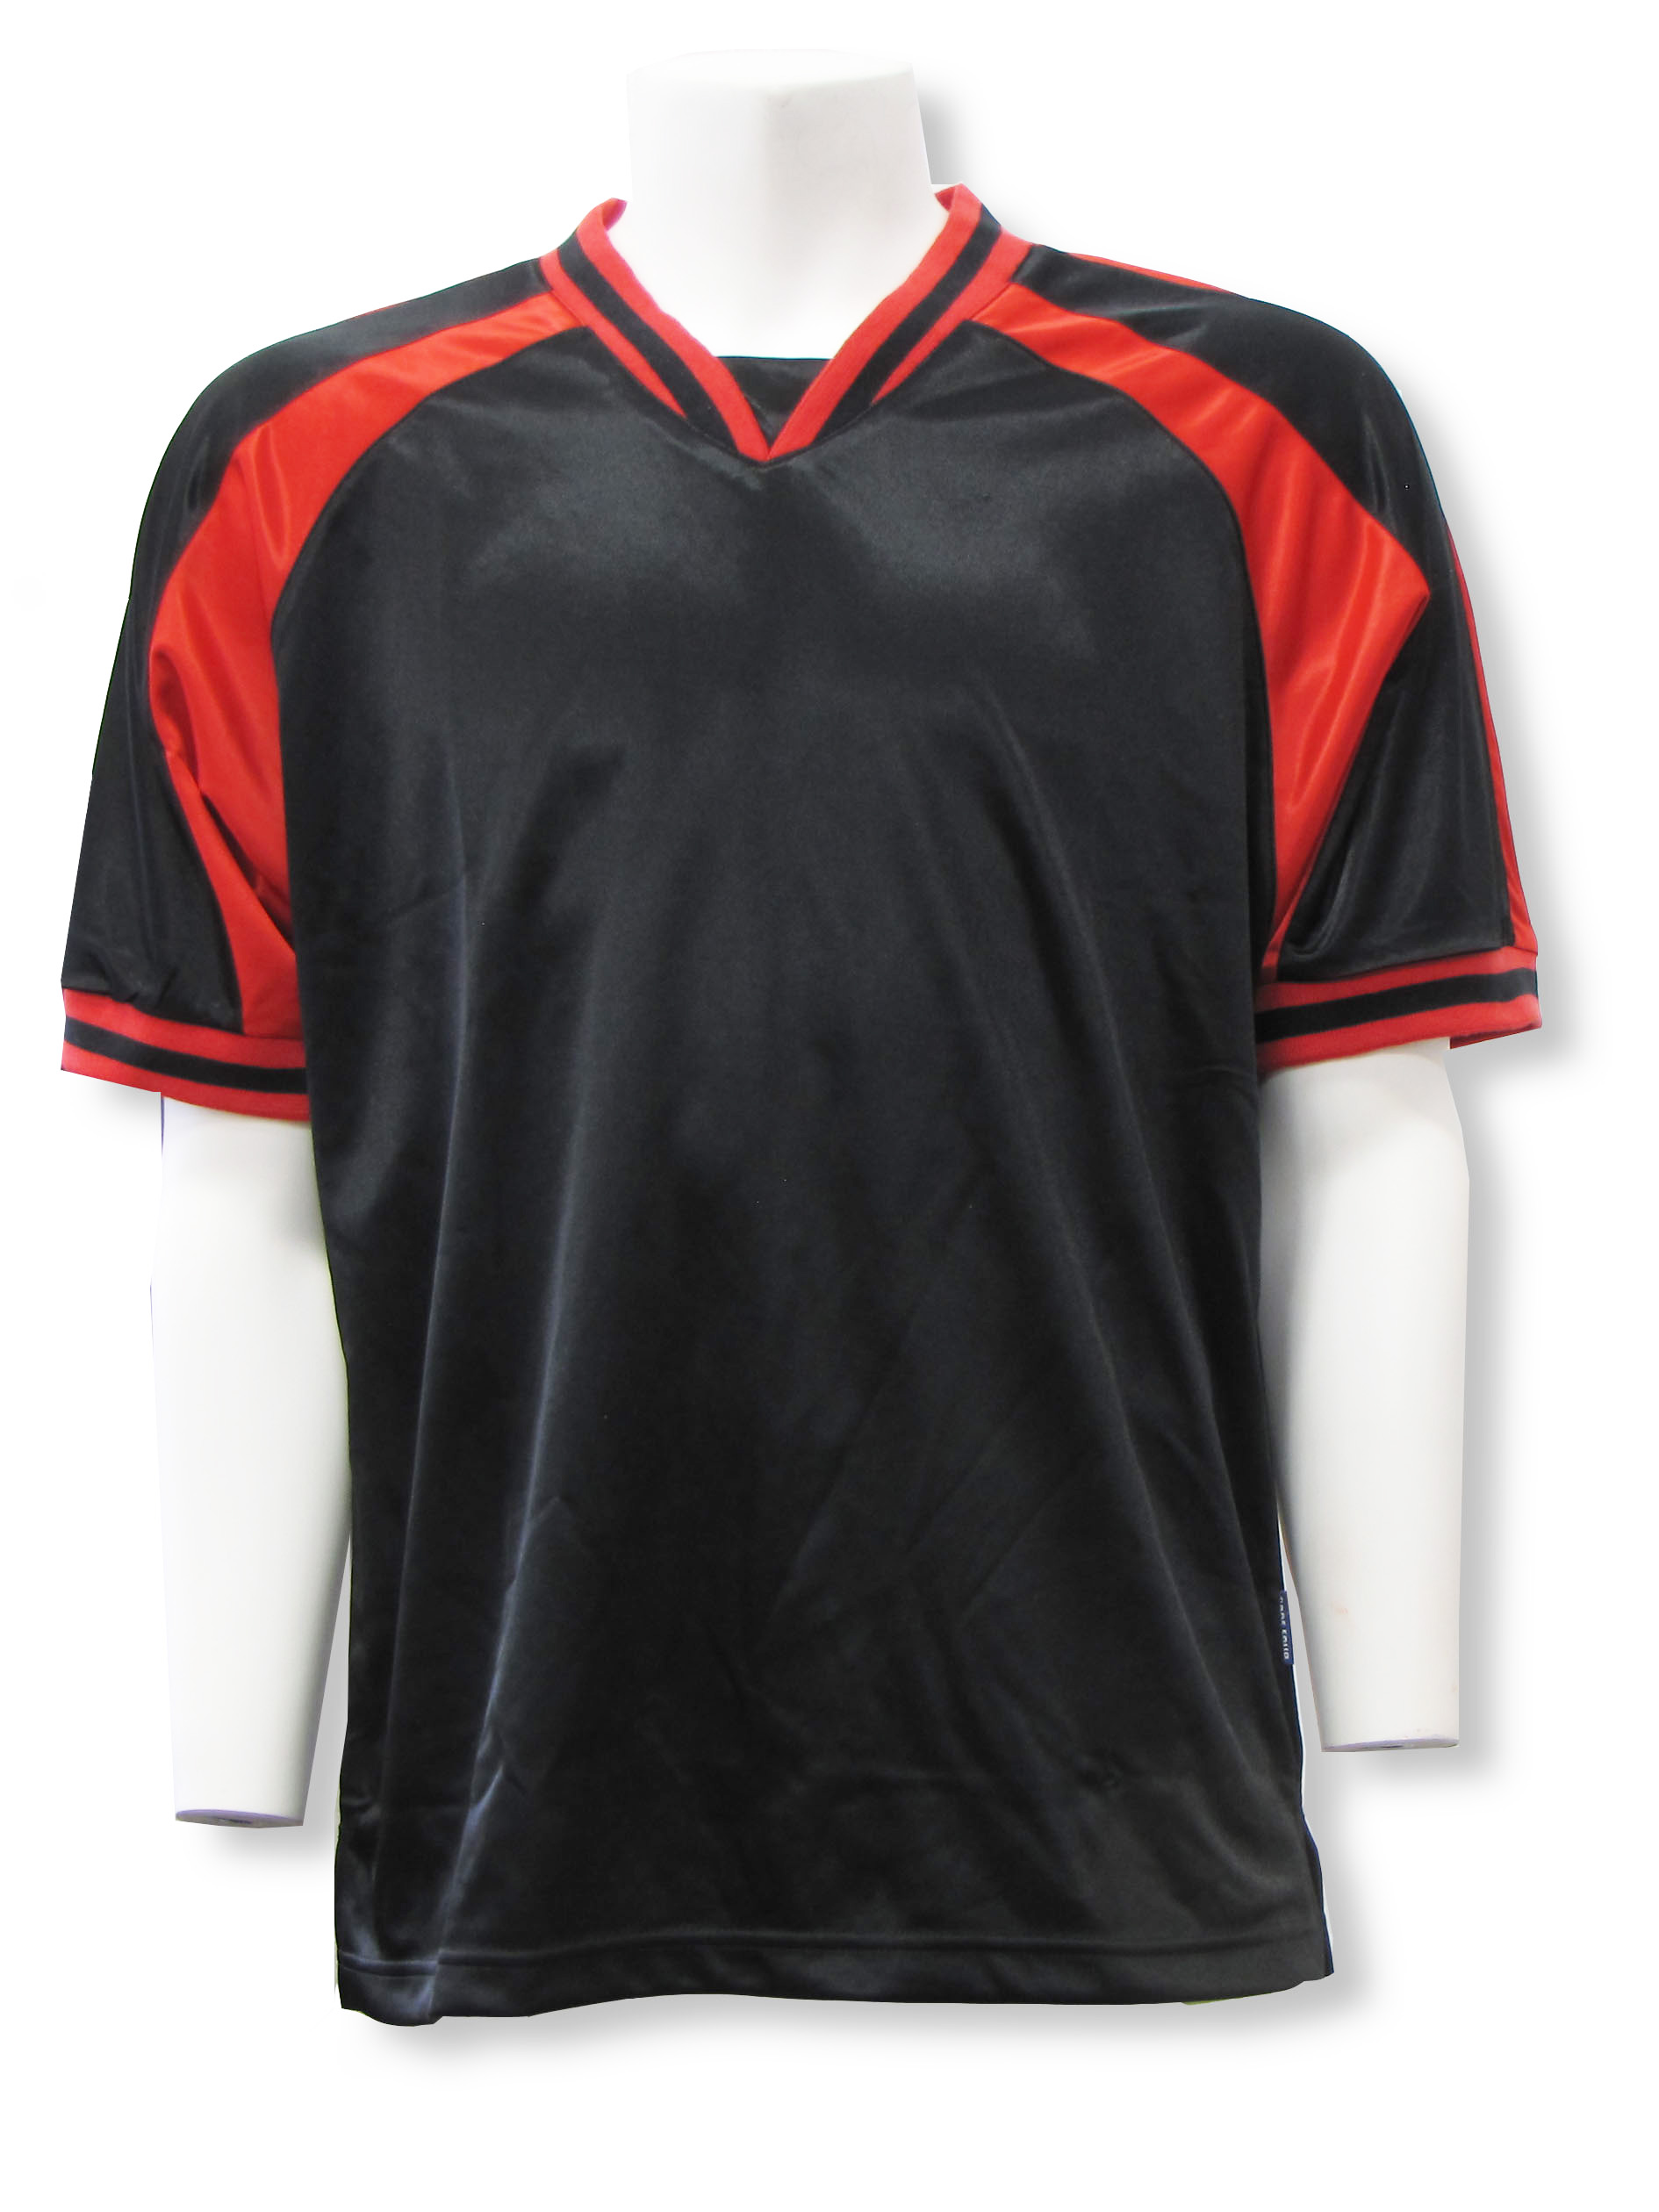 Spitfire soccer jersey in black/red by Code Four Athletics